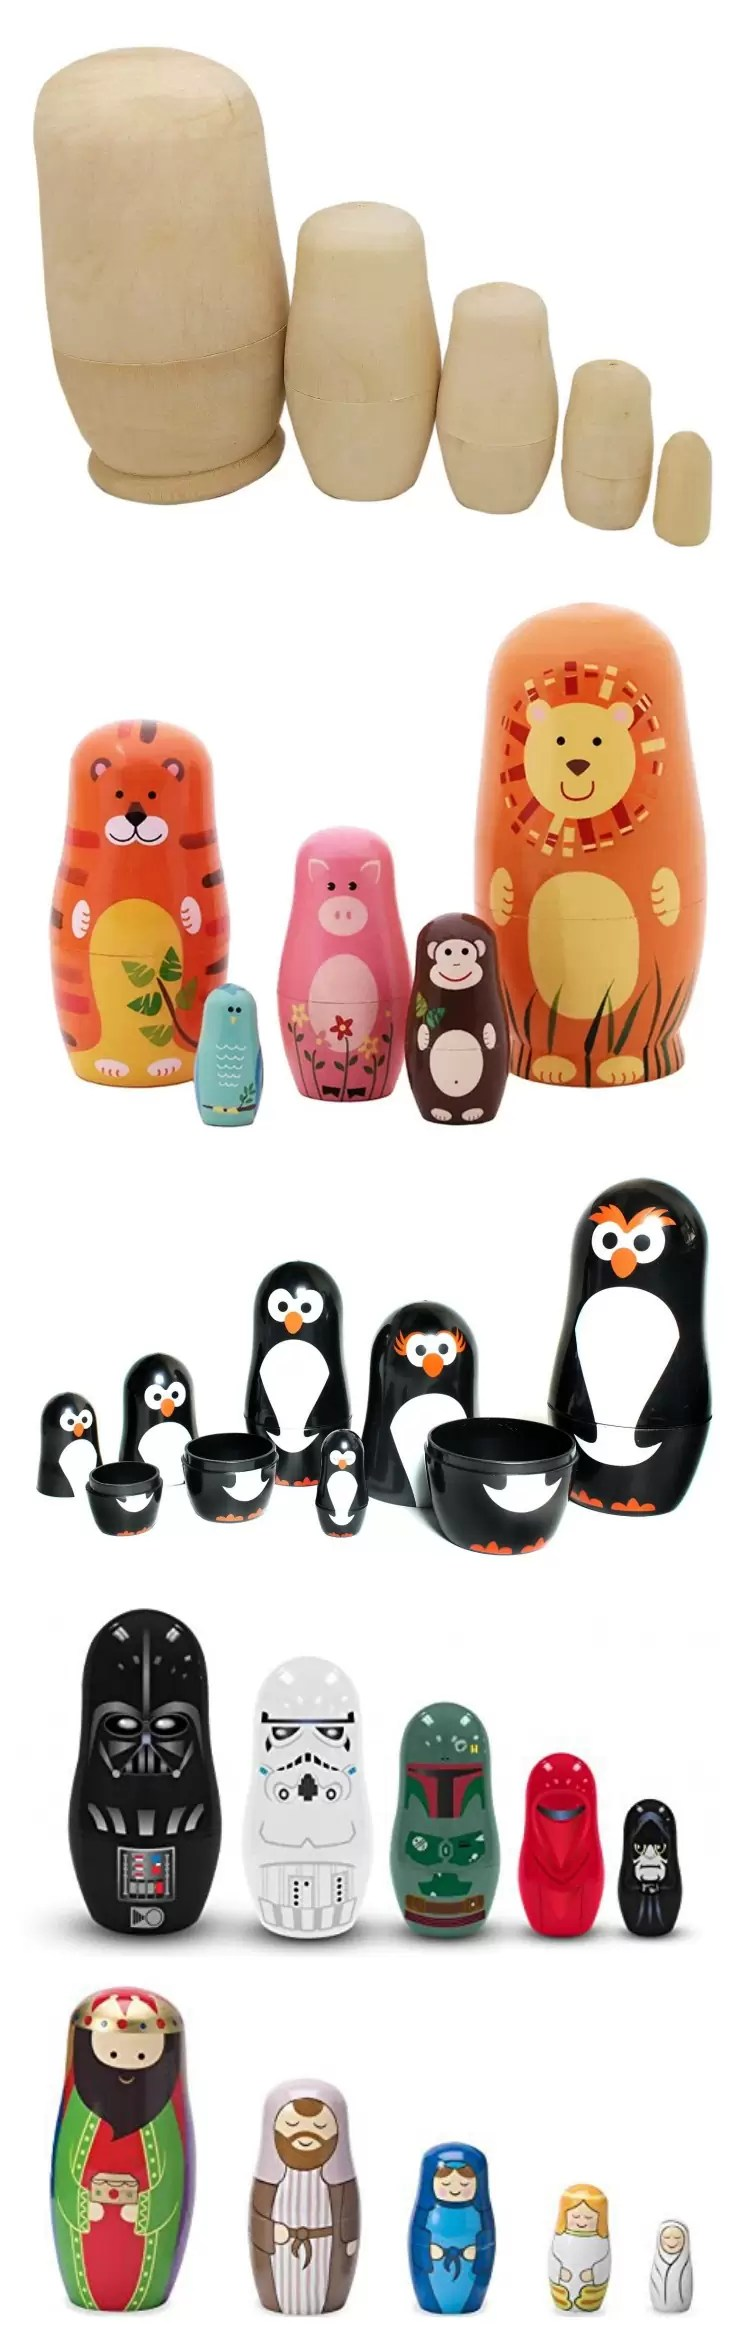 Ideas for Making your own Nesting Doll Ideas. Great gift idea!